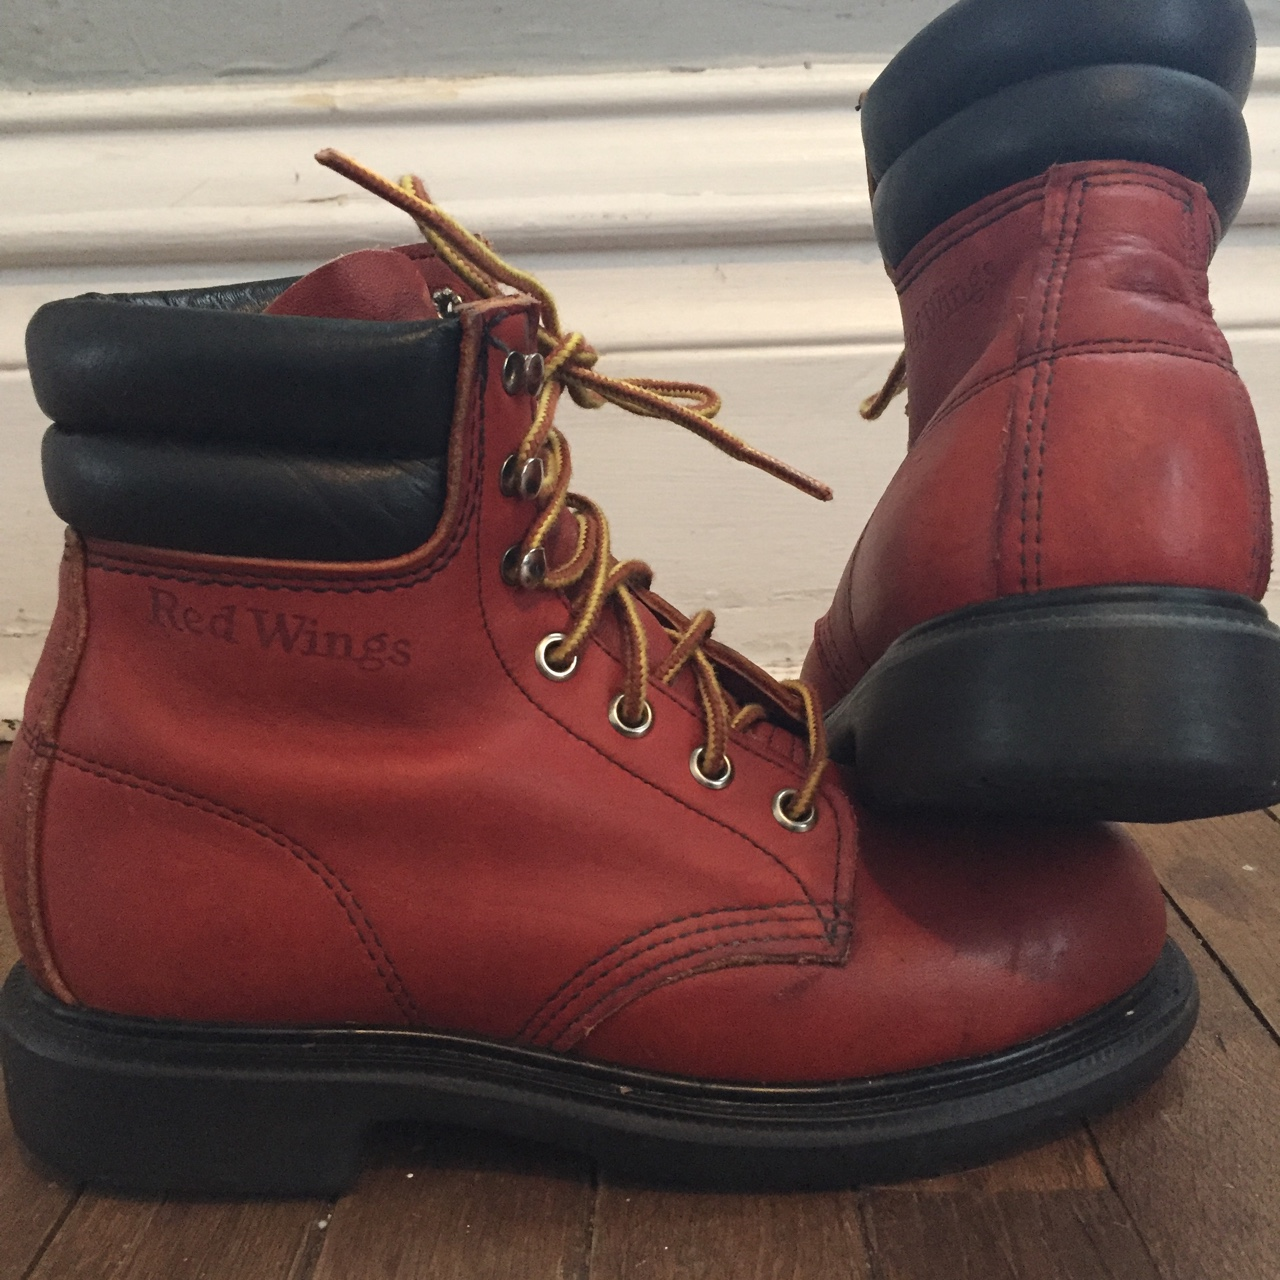 Vintage Red Wing boots! These babies